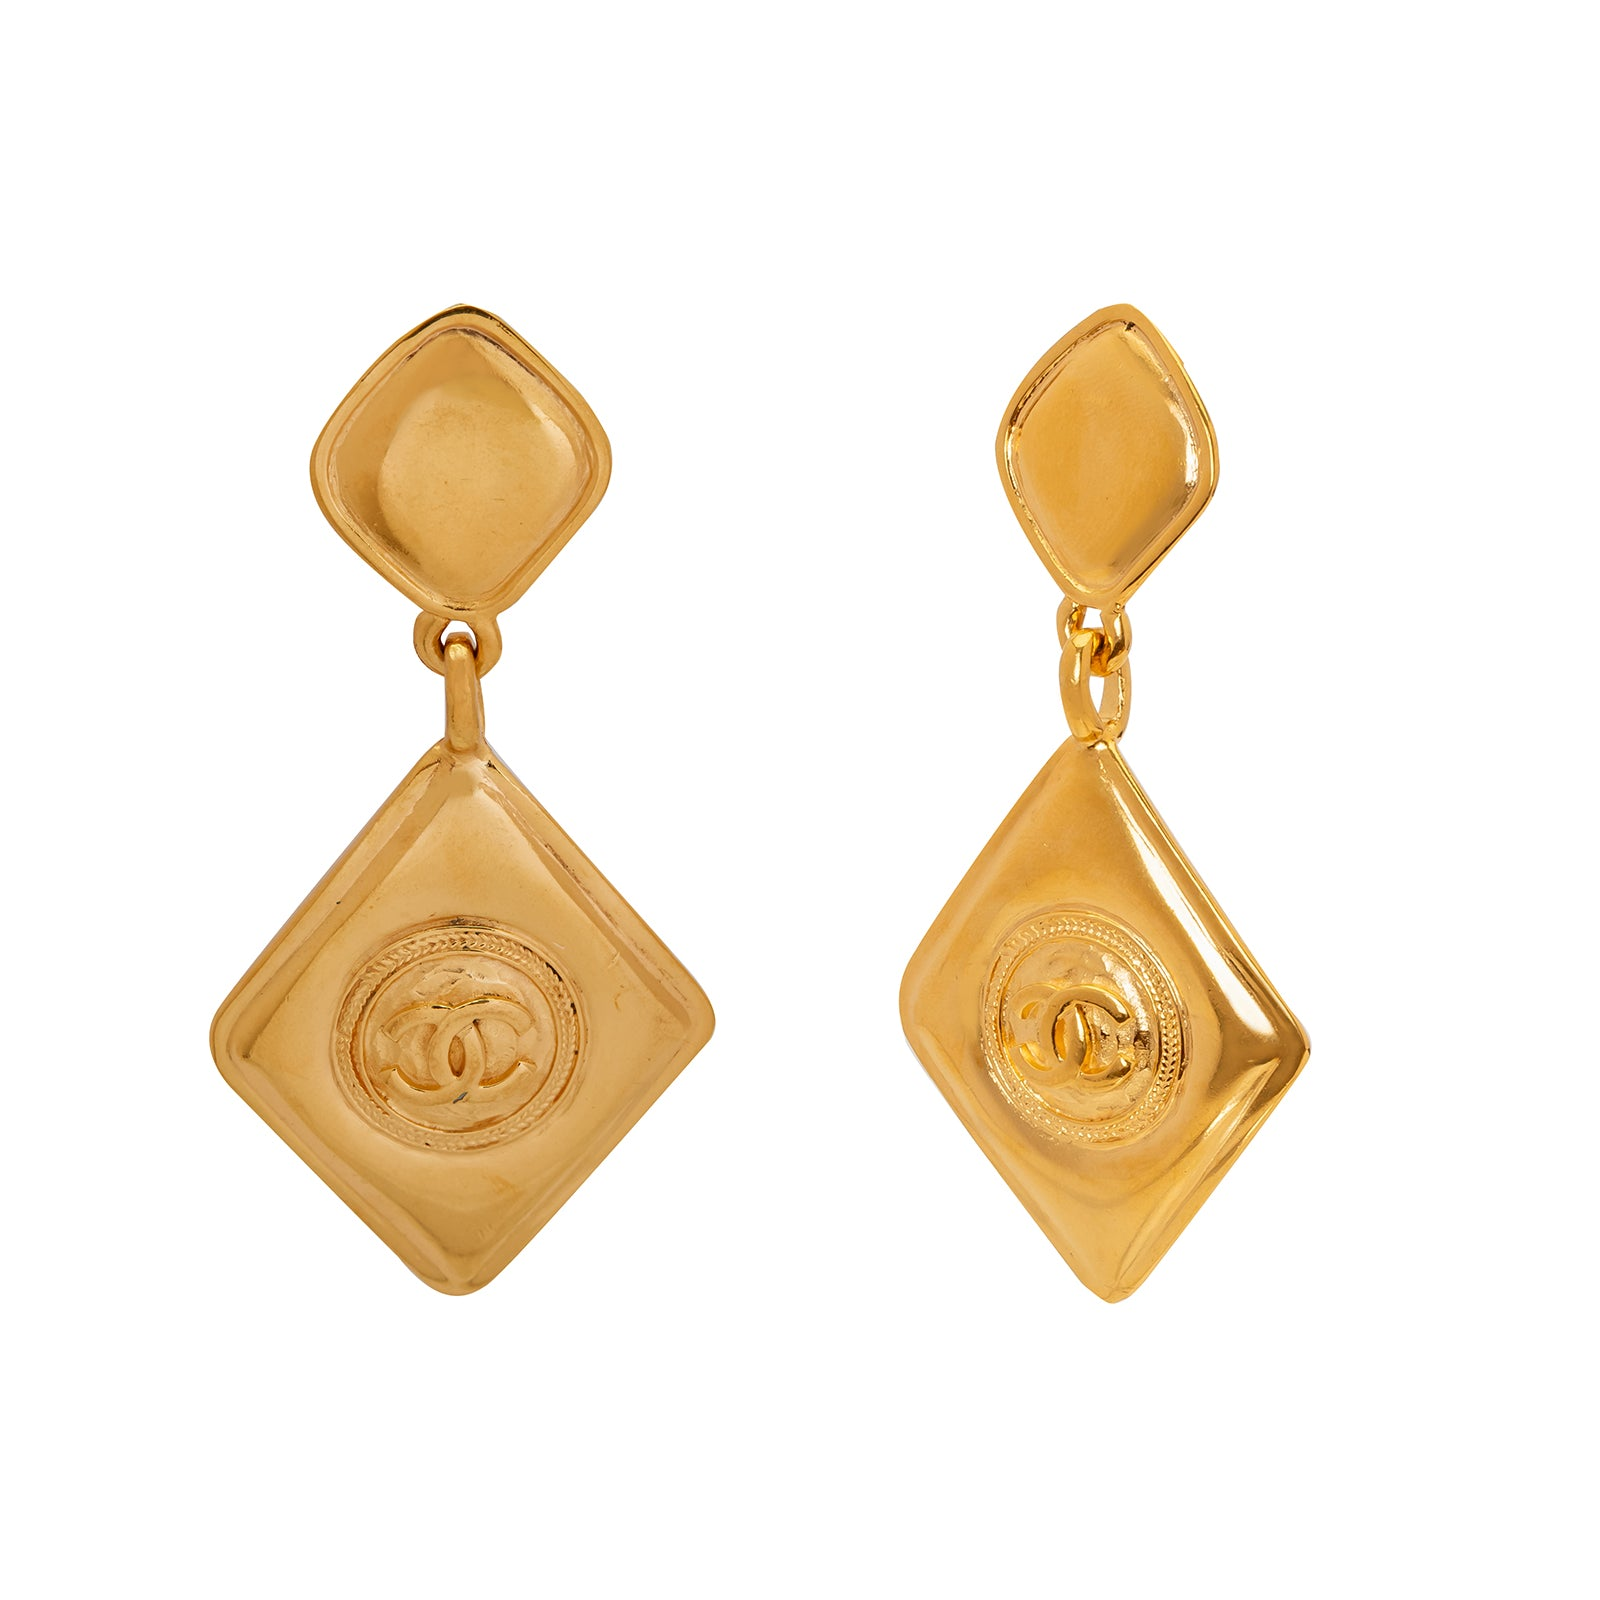 Antique & Vintage Jewelry Chanel Dangle Earrings - Earrings - Broken English Jewelry